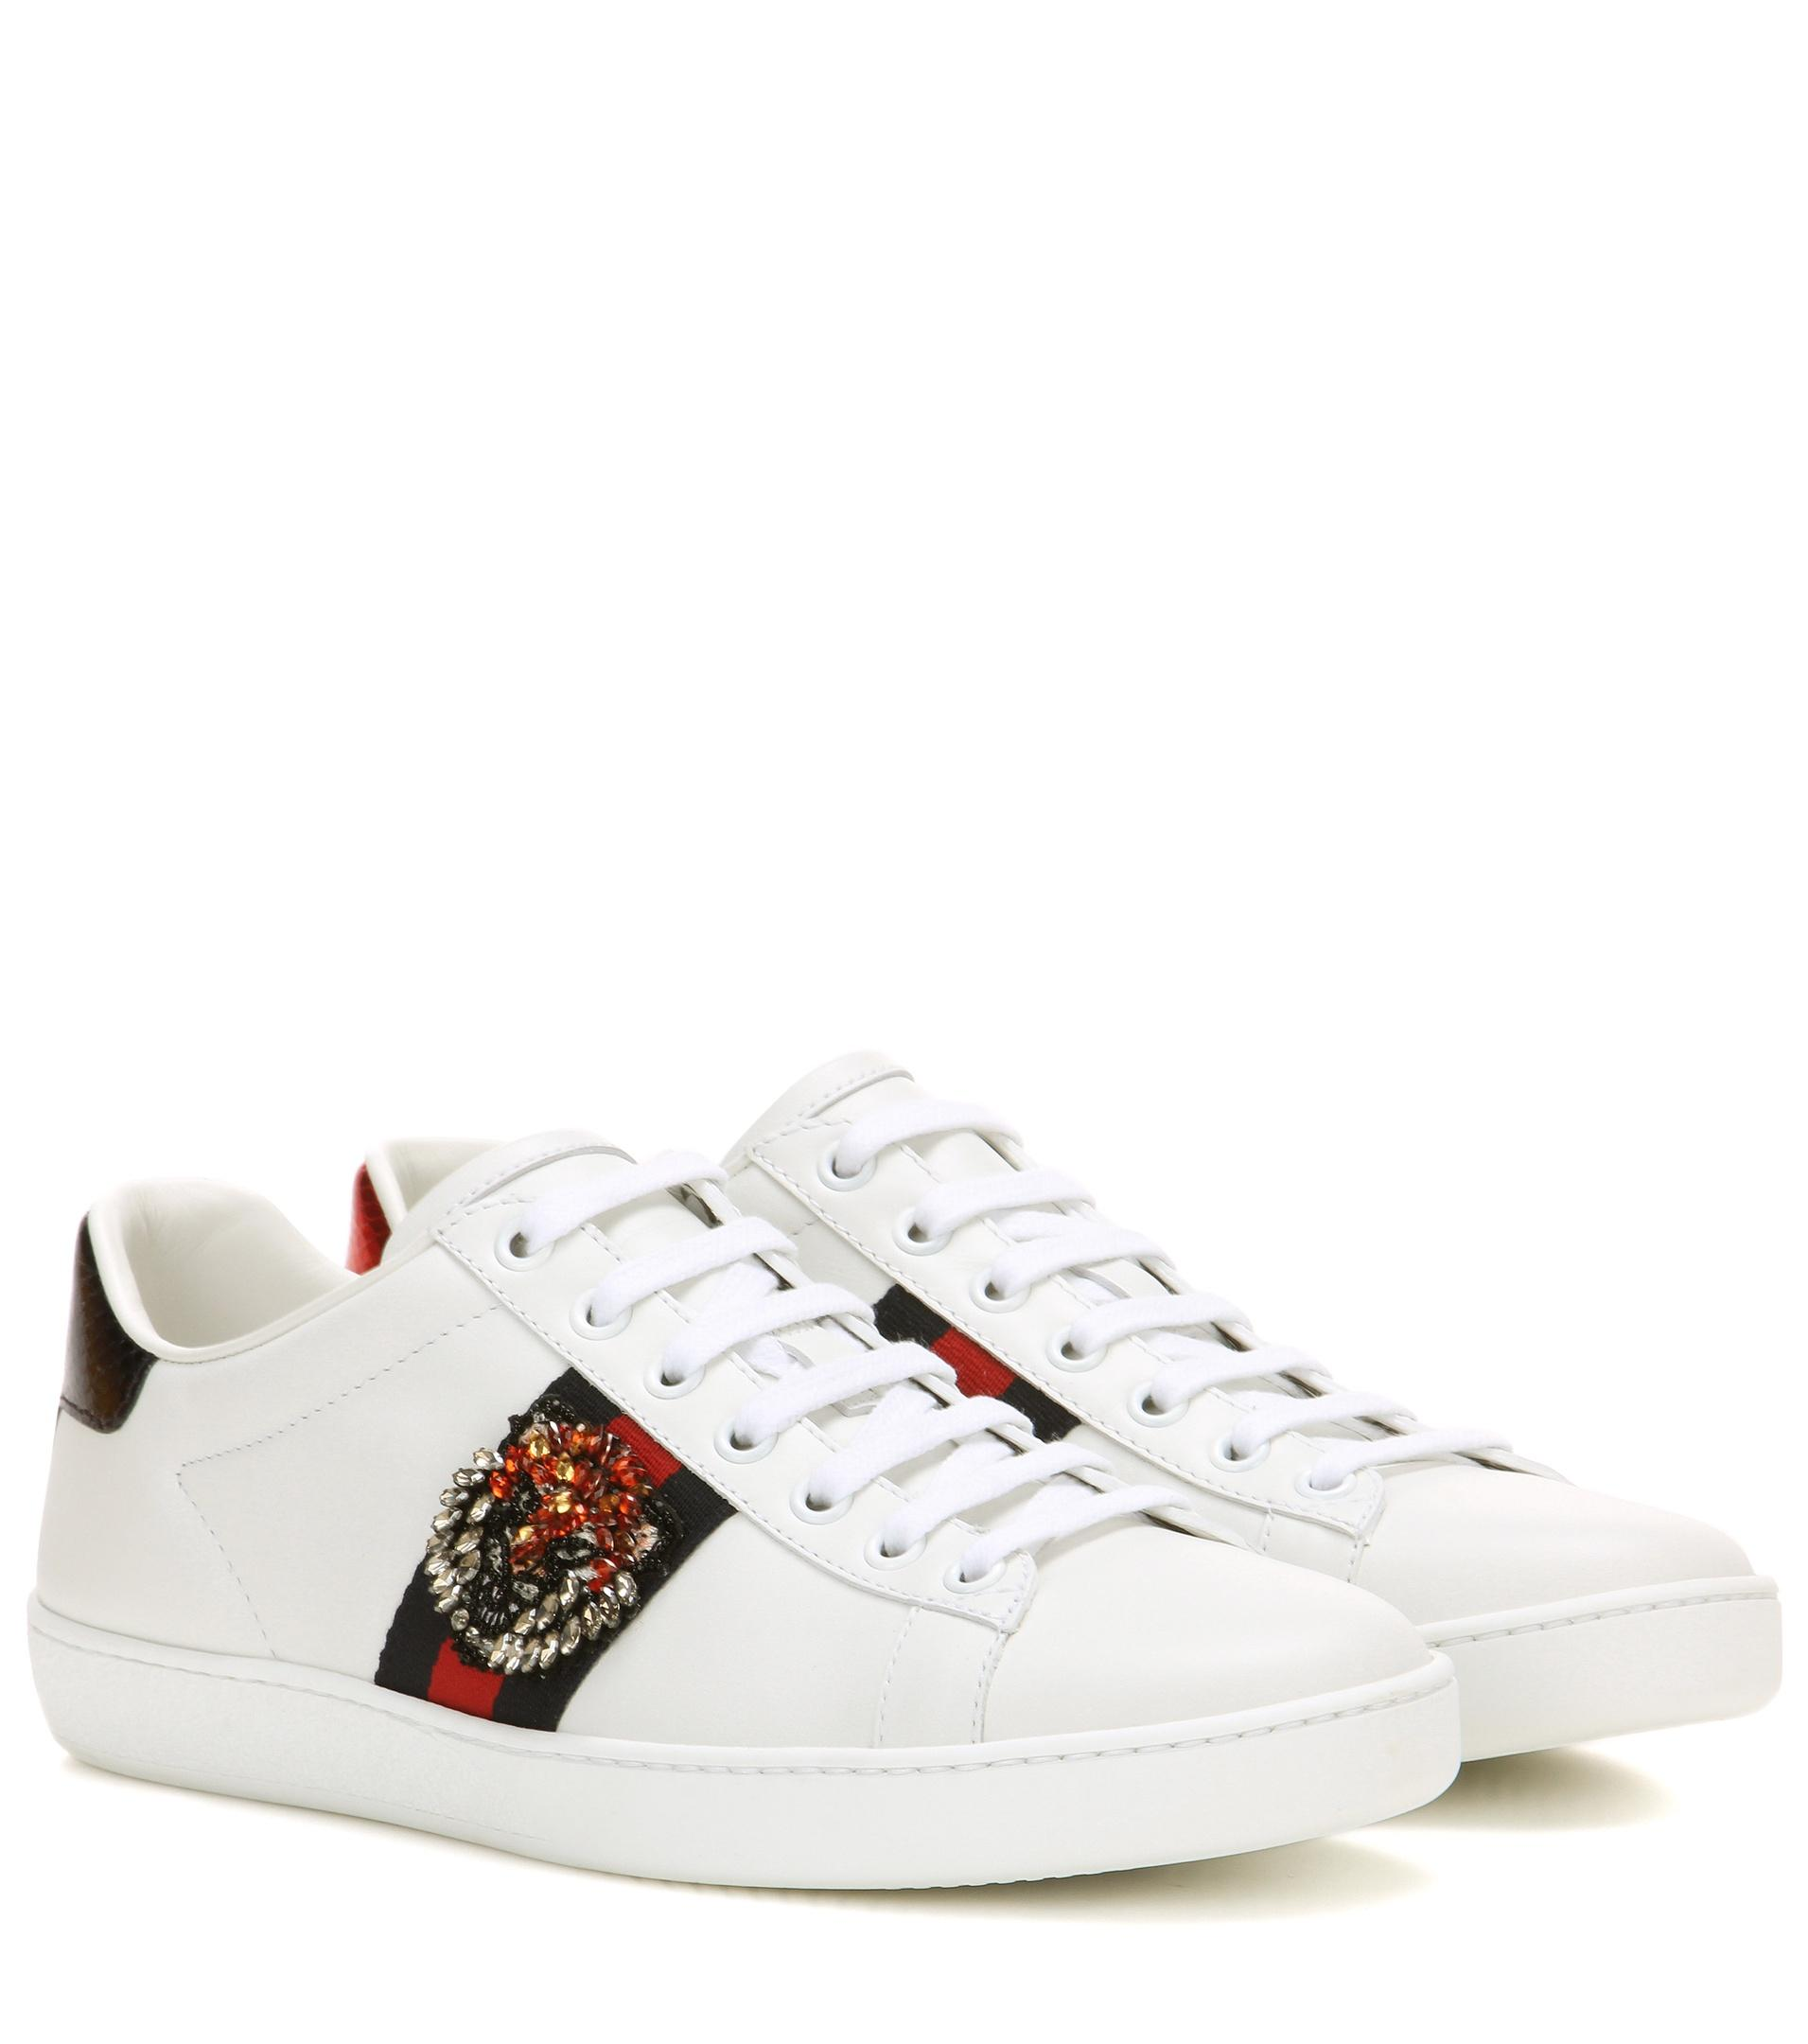 gucci ace embellished leather sneakers in white lyst. Black Bedroom Furniture Sets. Home Design Ideas